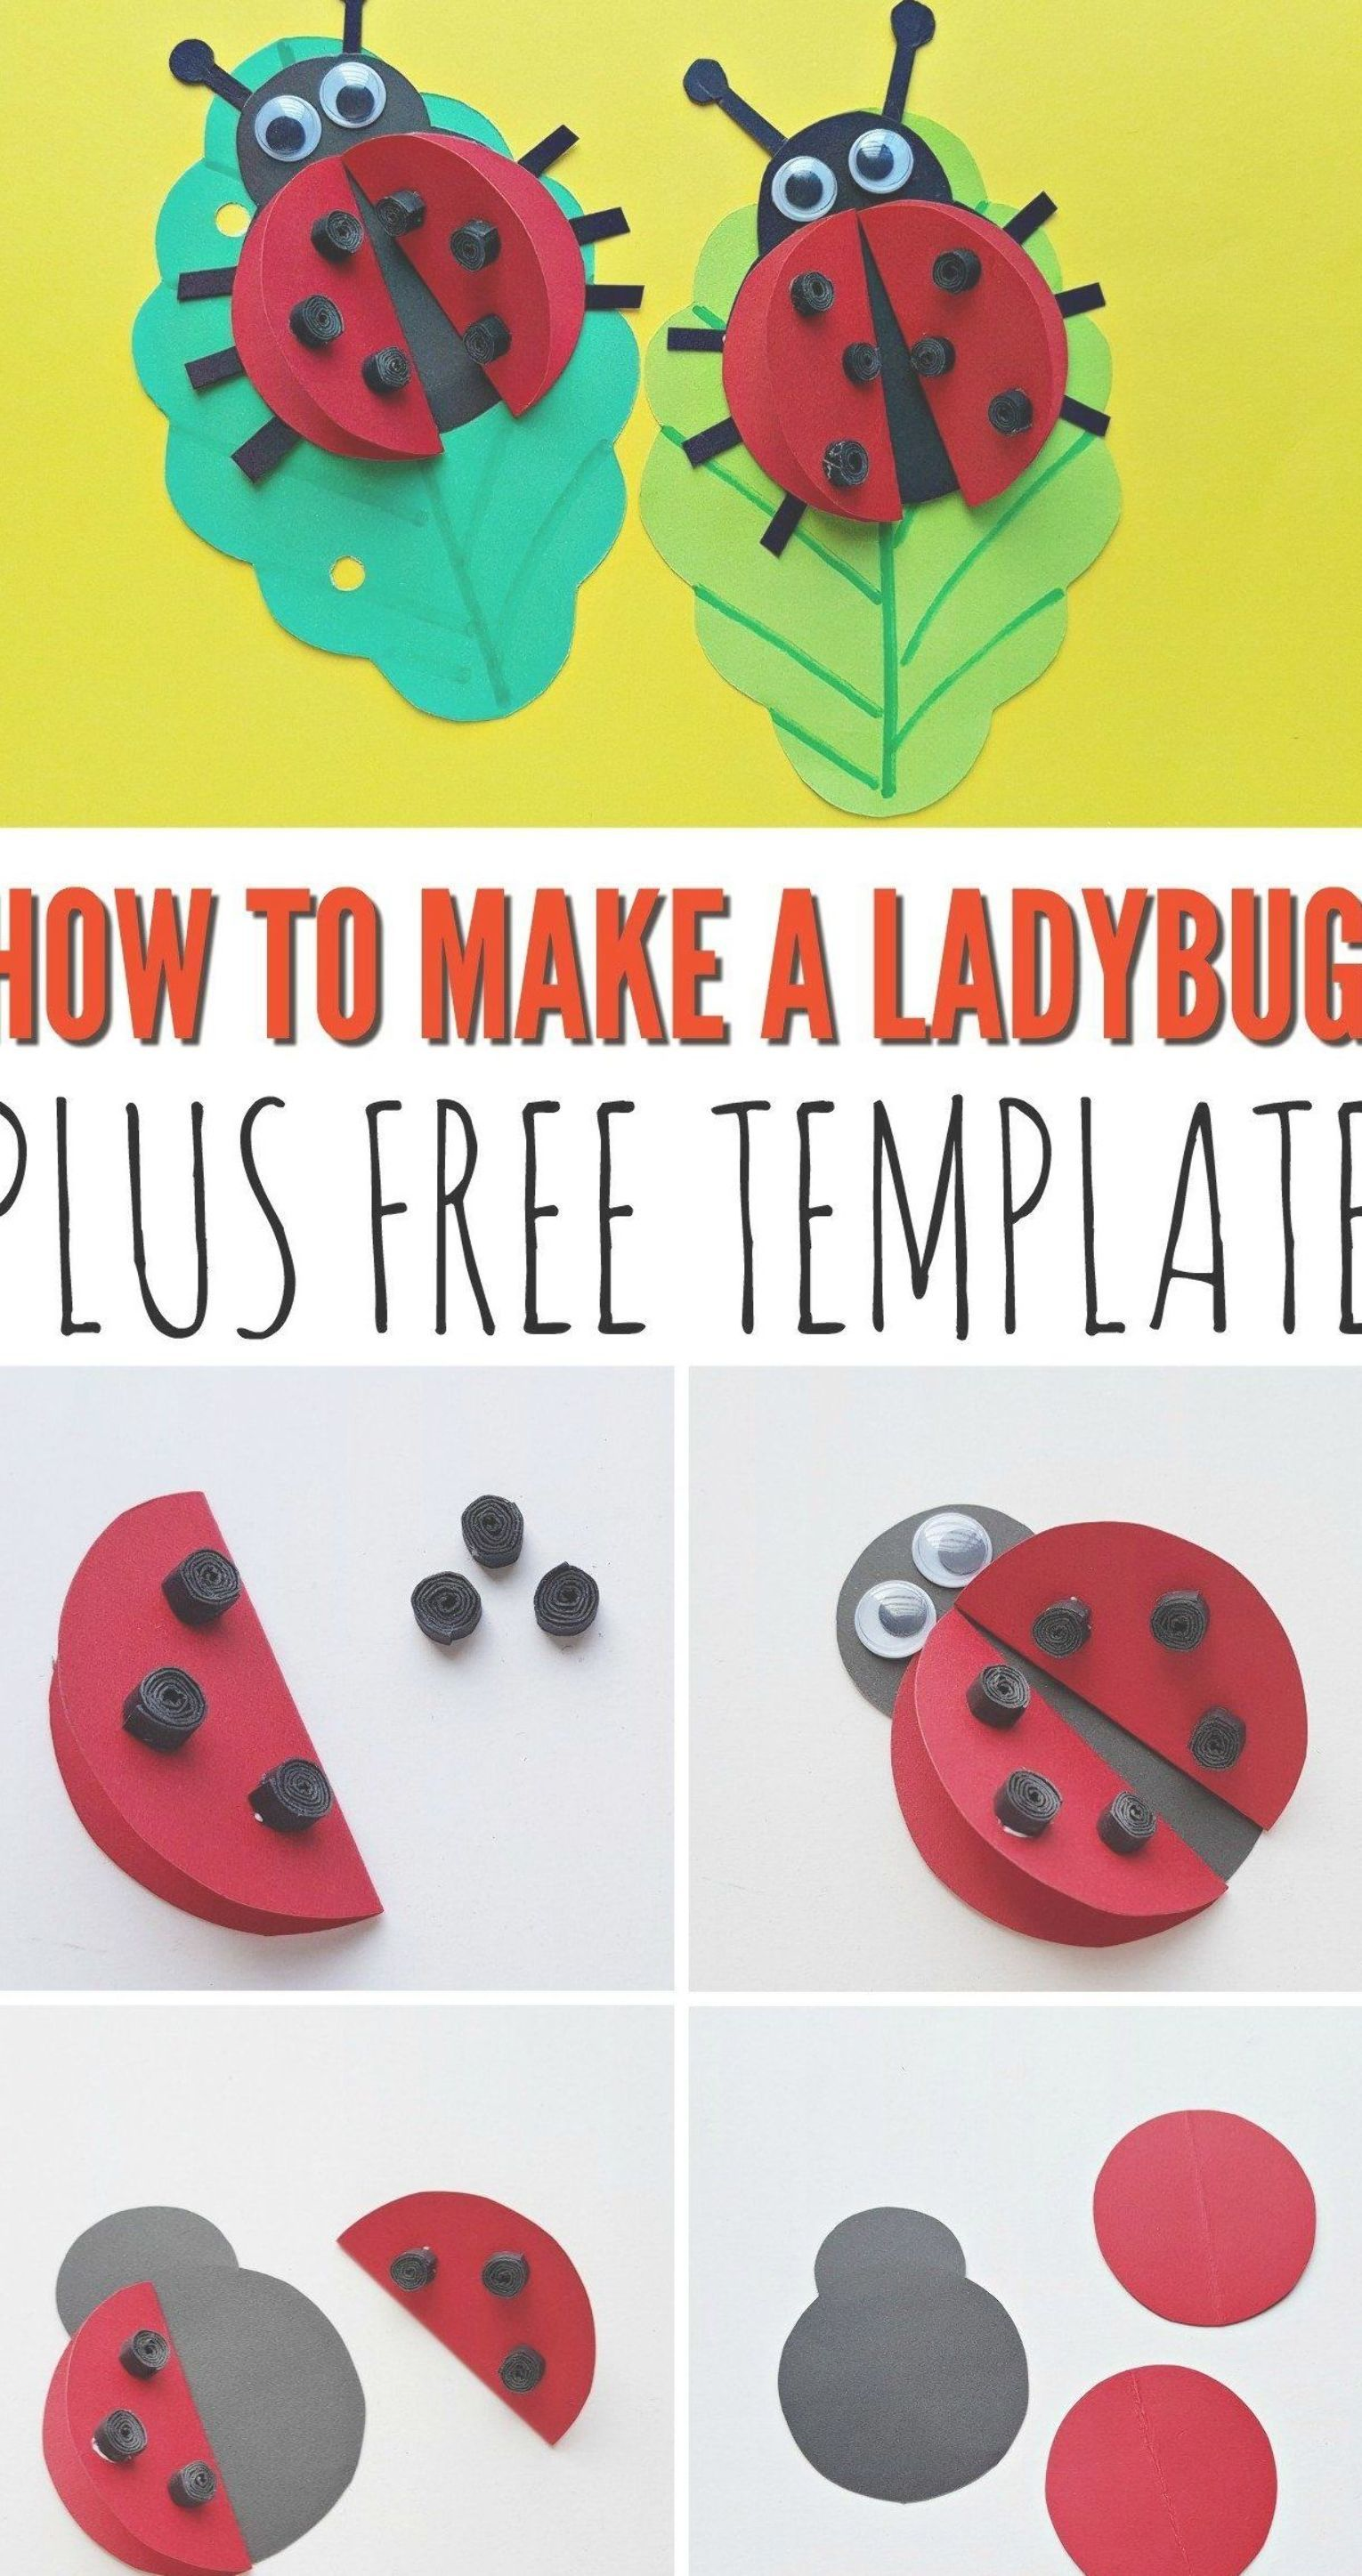 today we have a super easy ladybug craft which is a